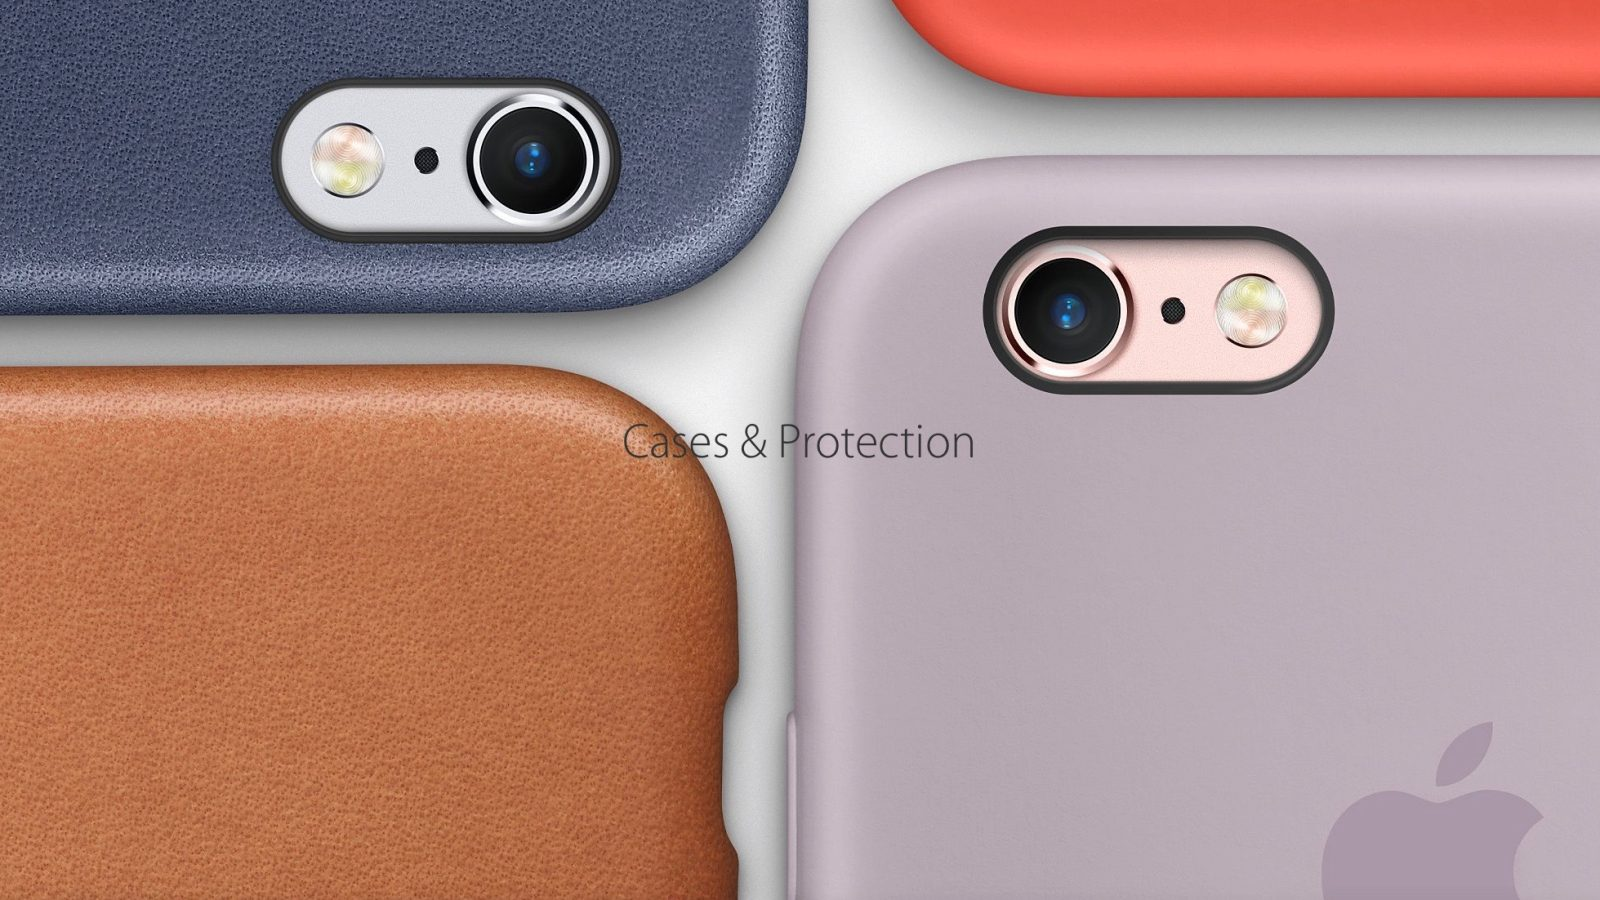 Apple has unveiled two new smartphones: iphone 6s and 6s plus.